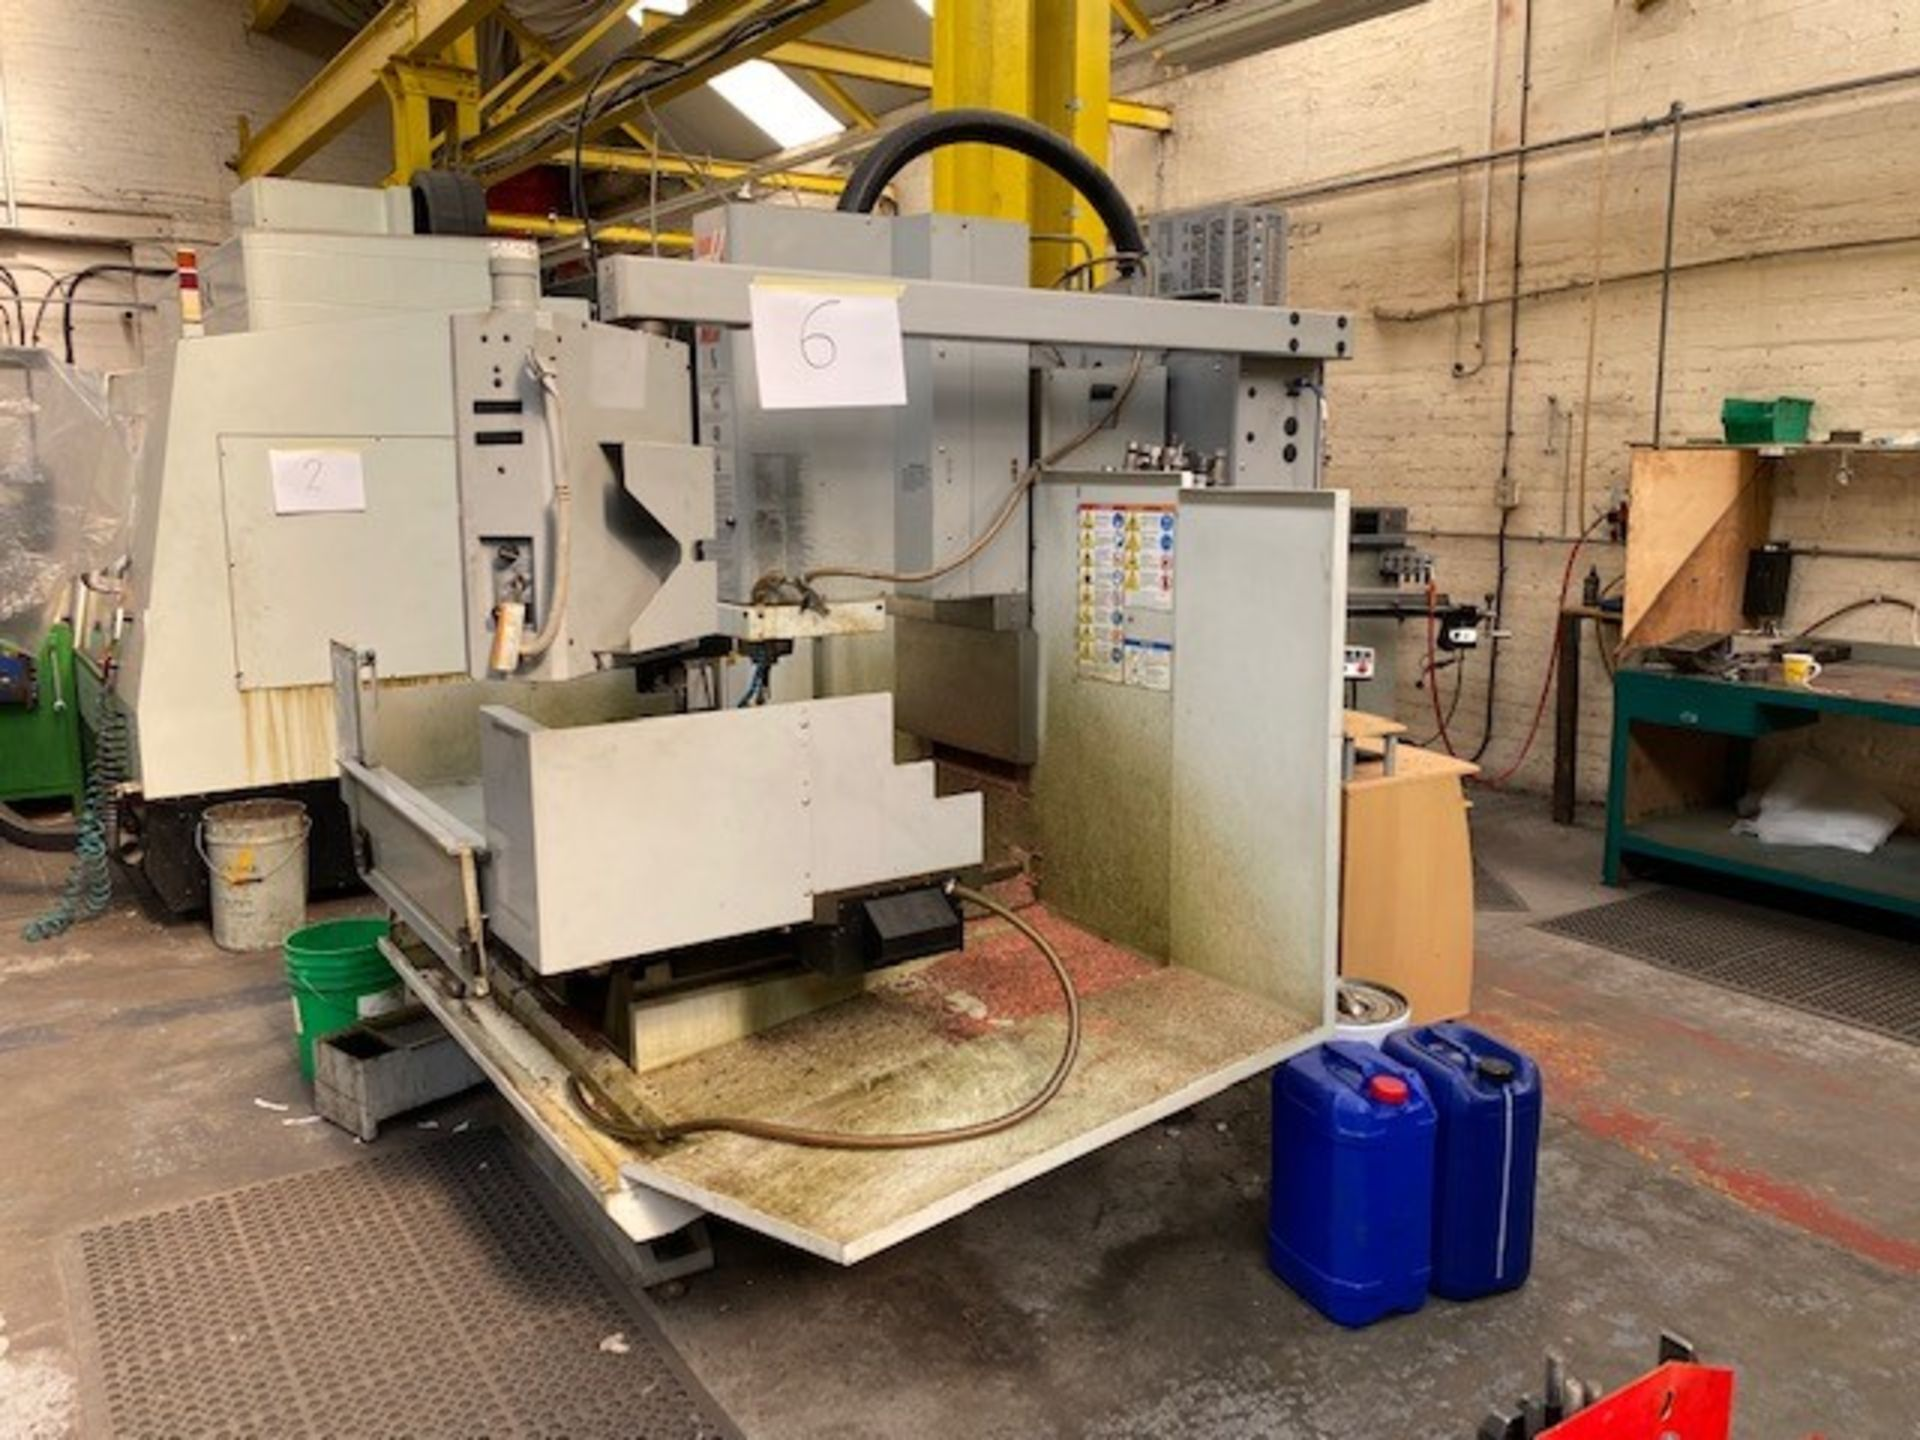 HASS CNC VERTICAL MACHINING CENTRE MODEL: TM-3CE SERIAL No: 1069469 DOM: 07/08 TO INCLUDE MANUALS - Image 4 of 5